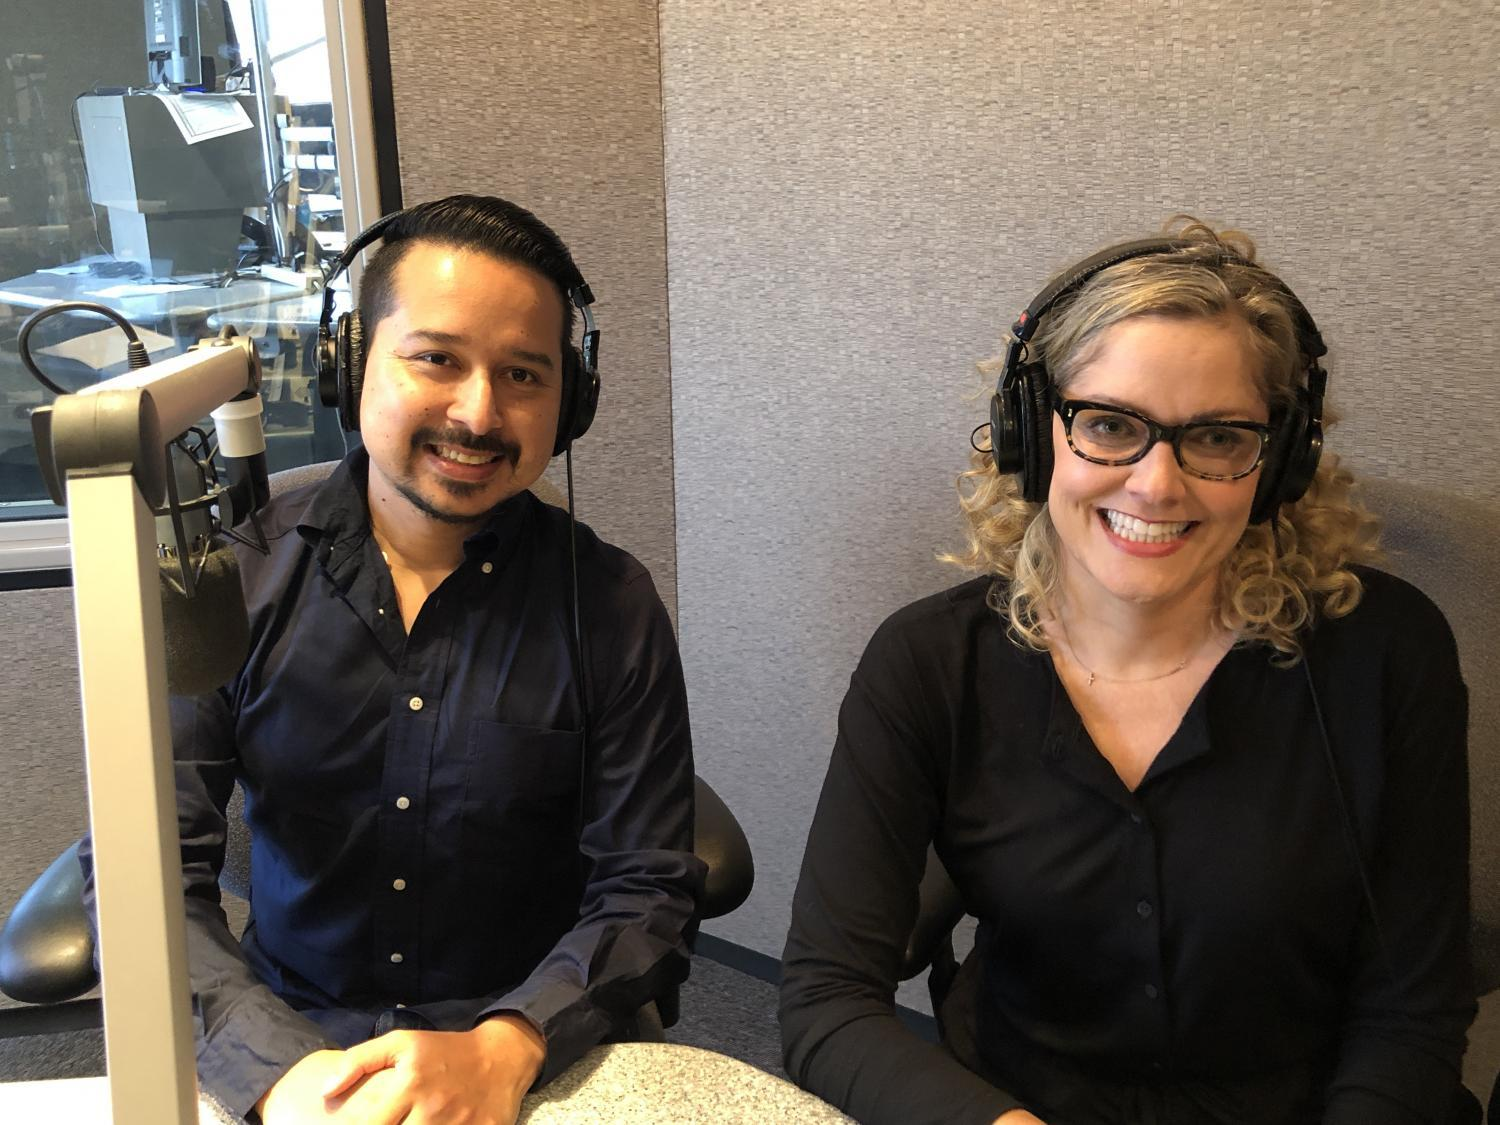 Roy Herrera (left) and Emily Ryan spoke to KJZZ